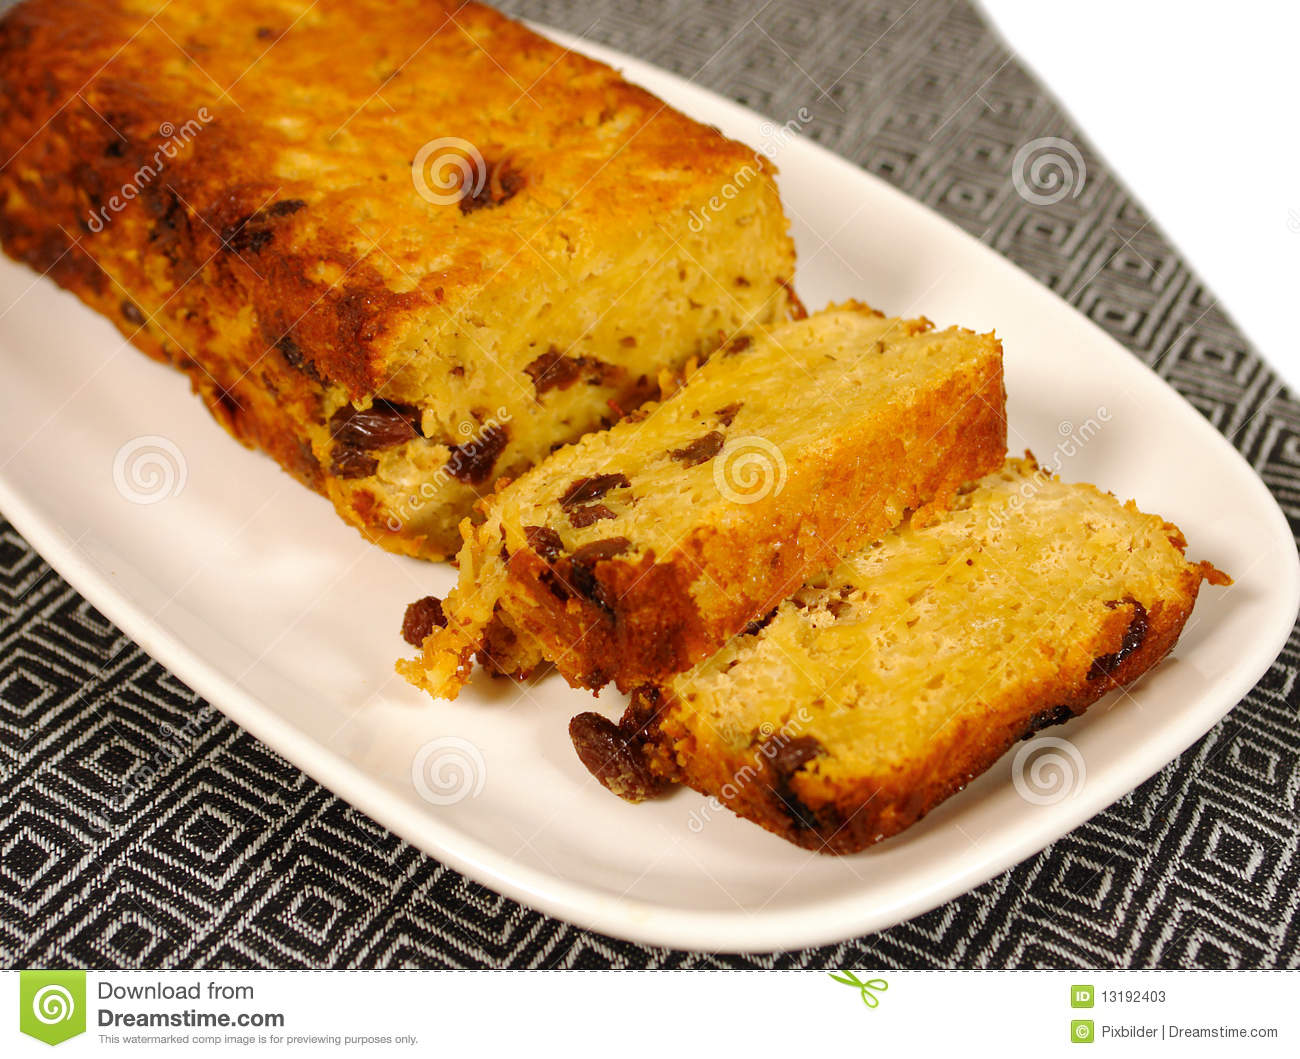 Pasta cake with raisins called kugel in middle eastern cuisine.